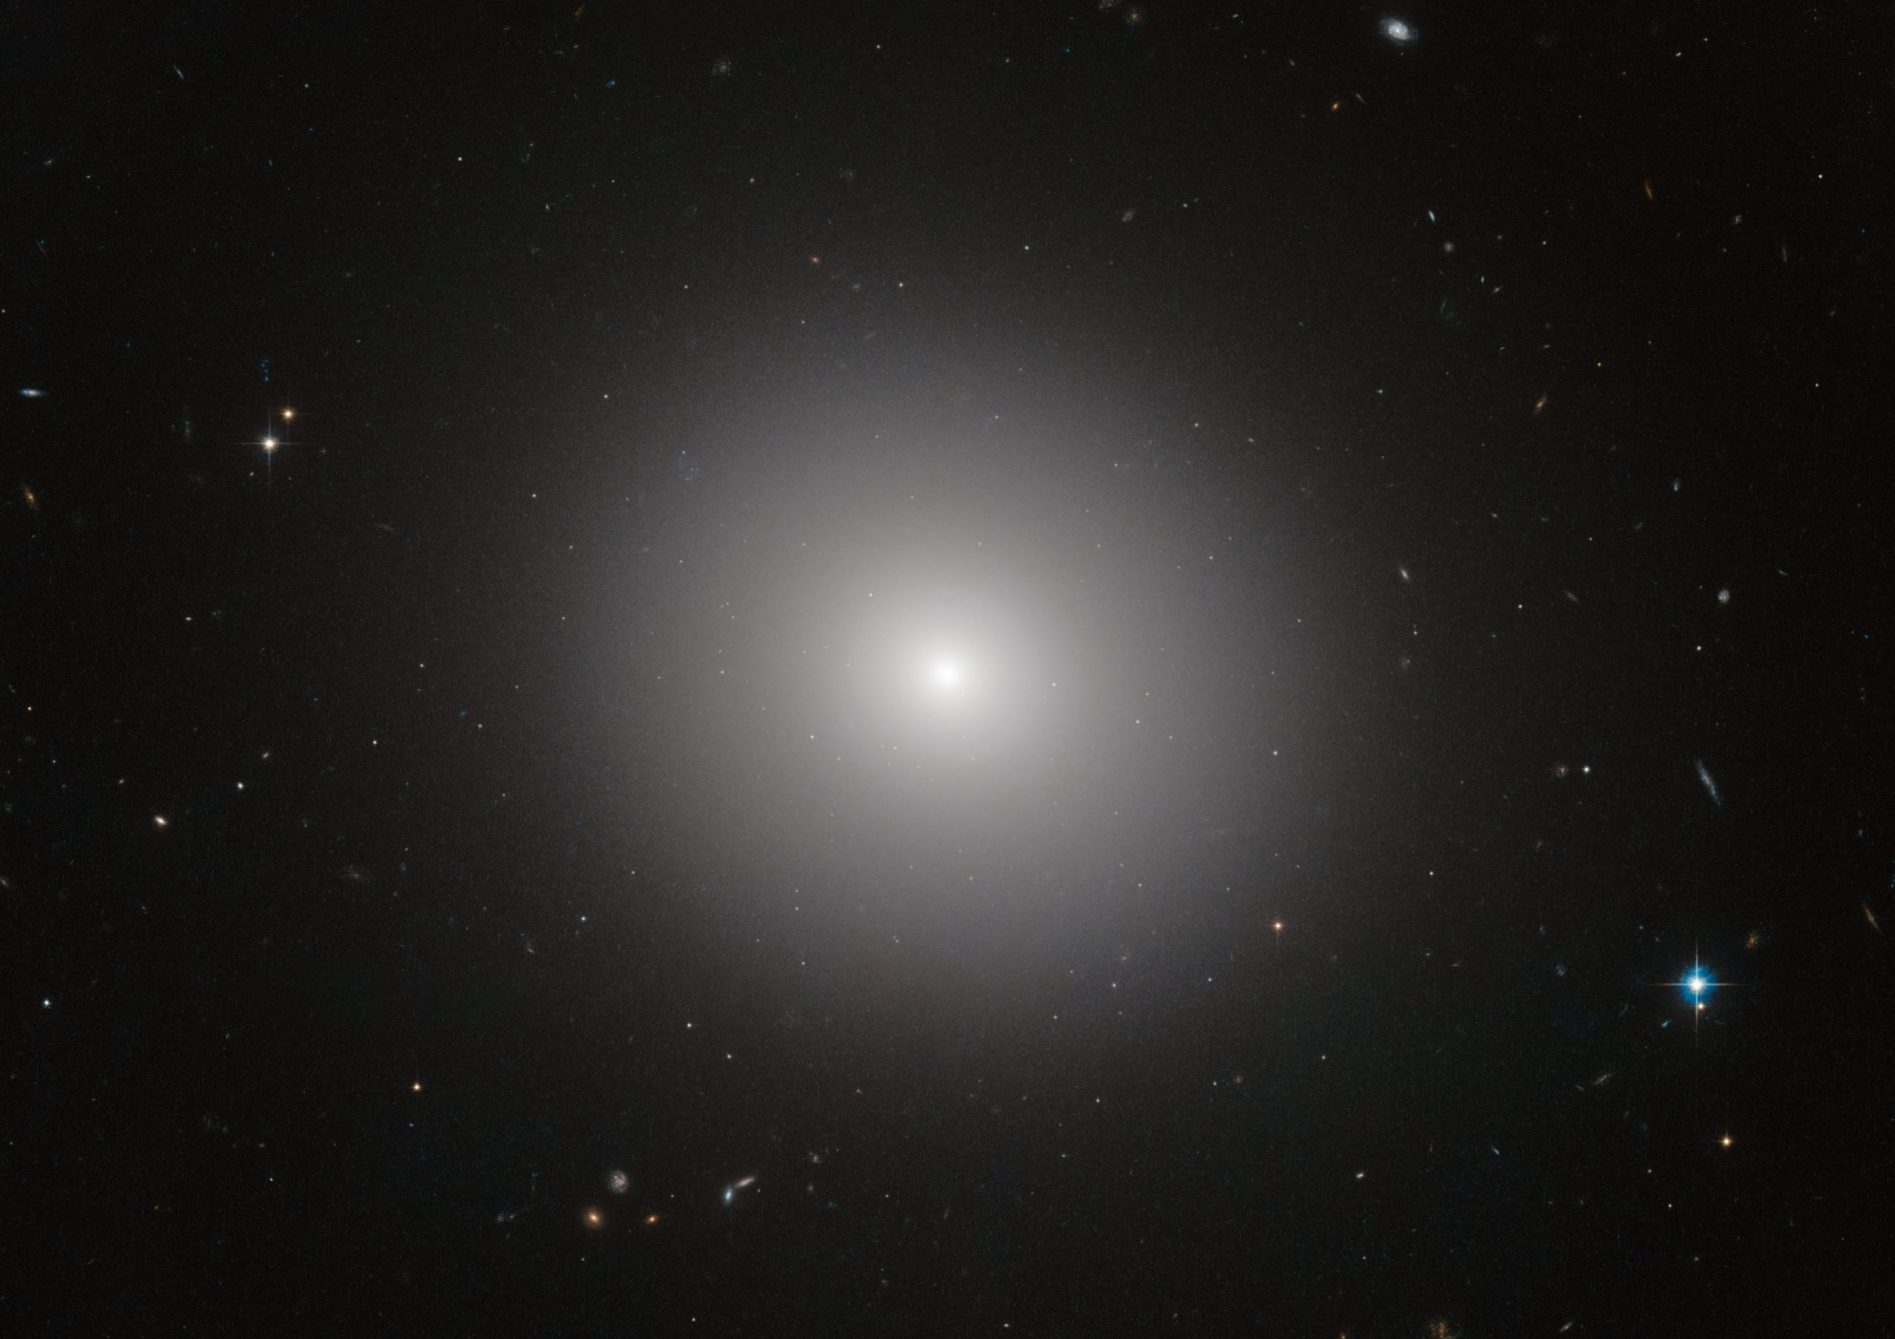 ESA/Hubble & NASA image of elliptical galaxy IC 2006